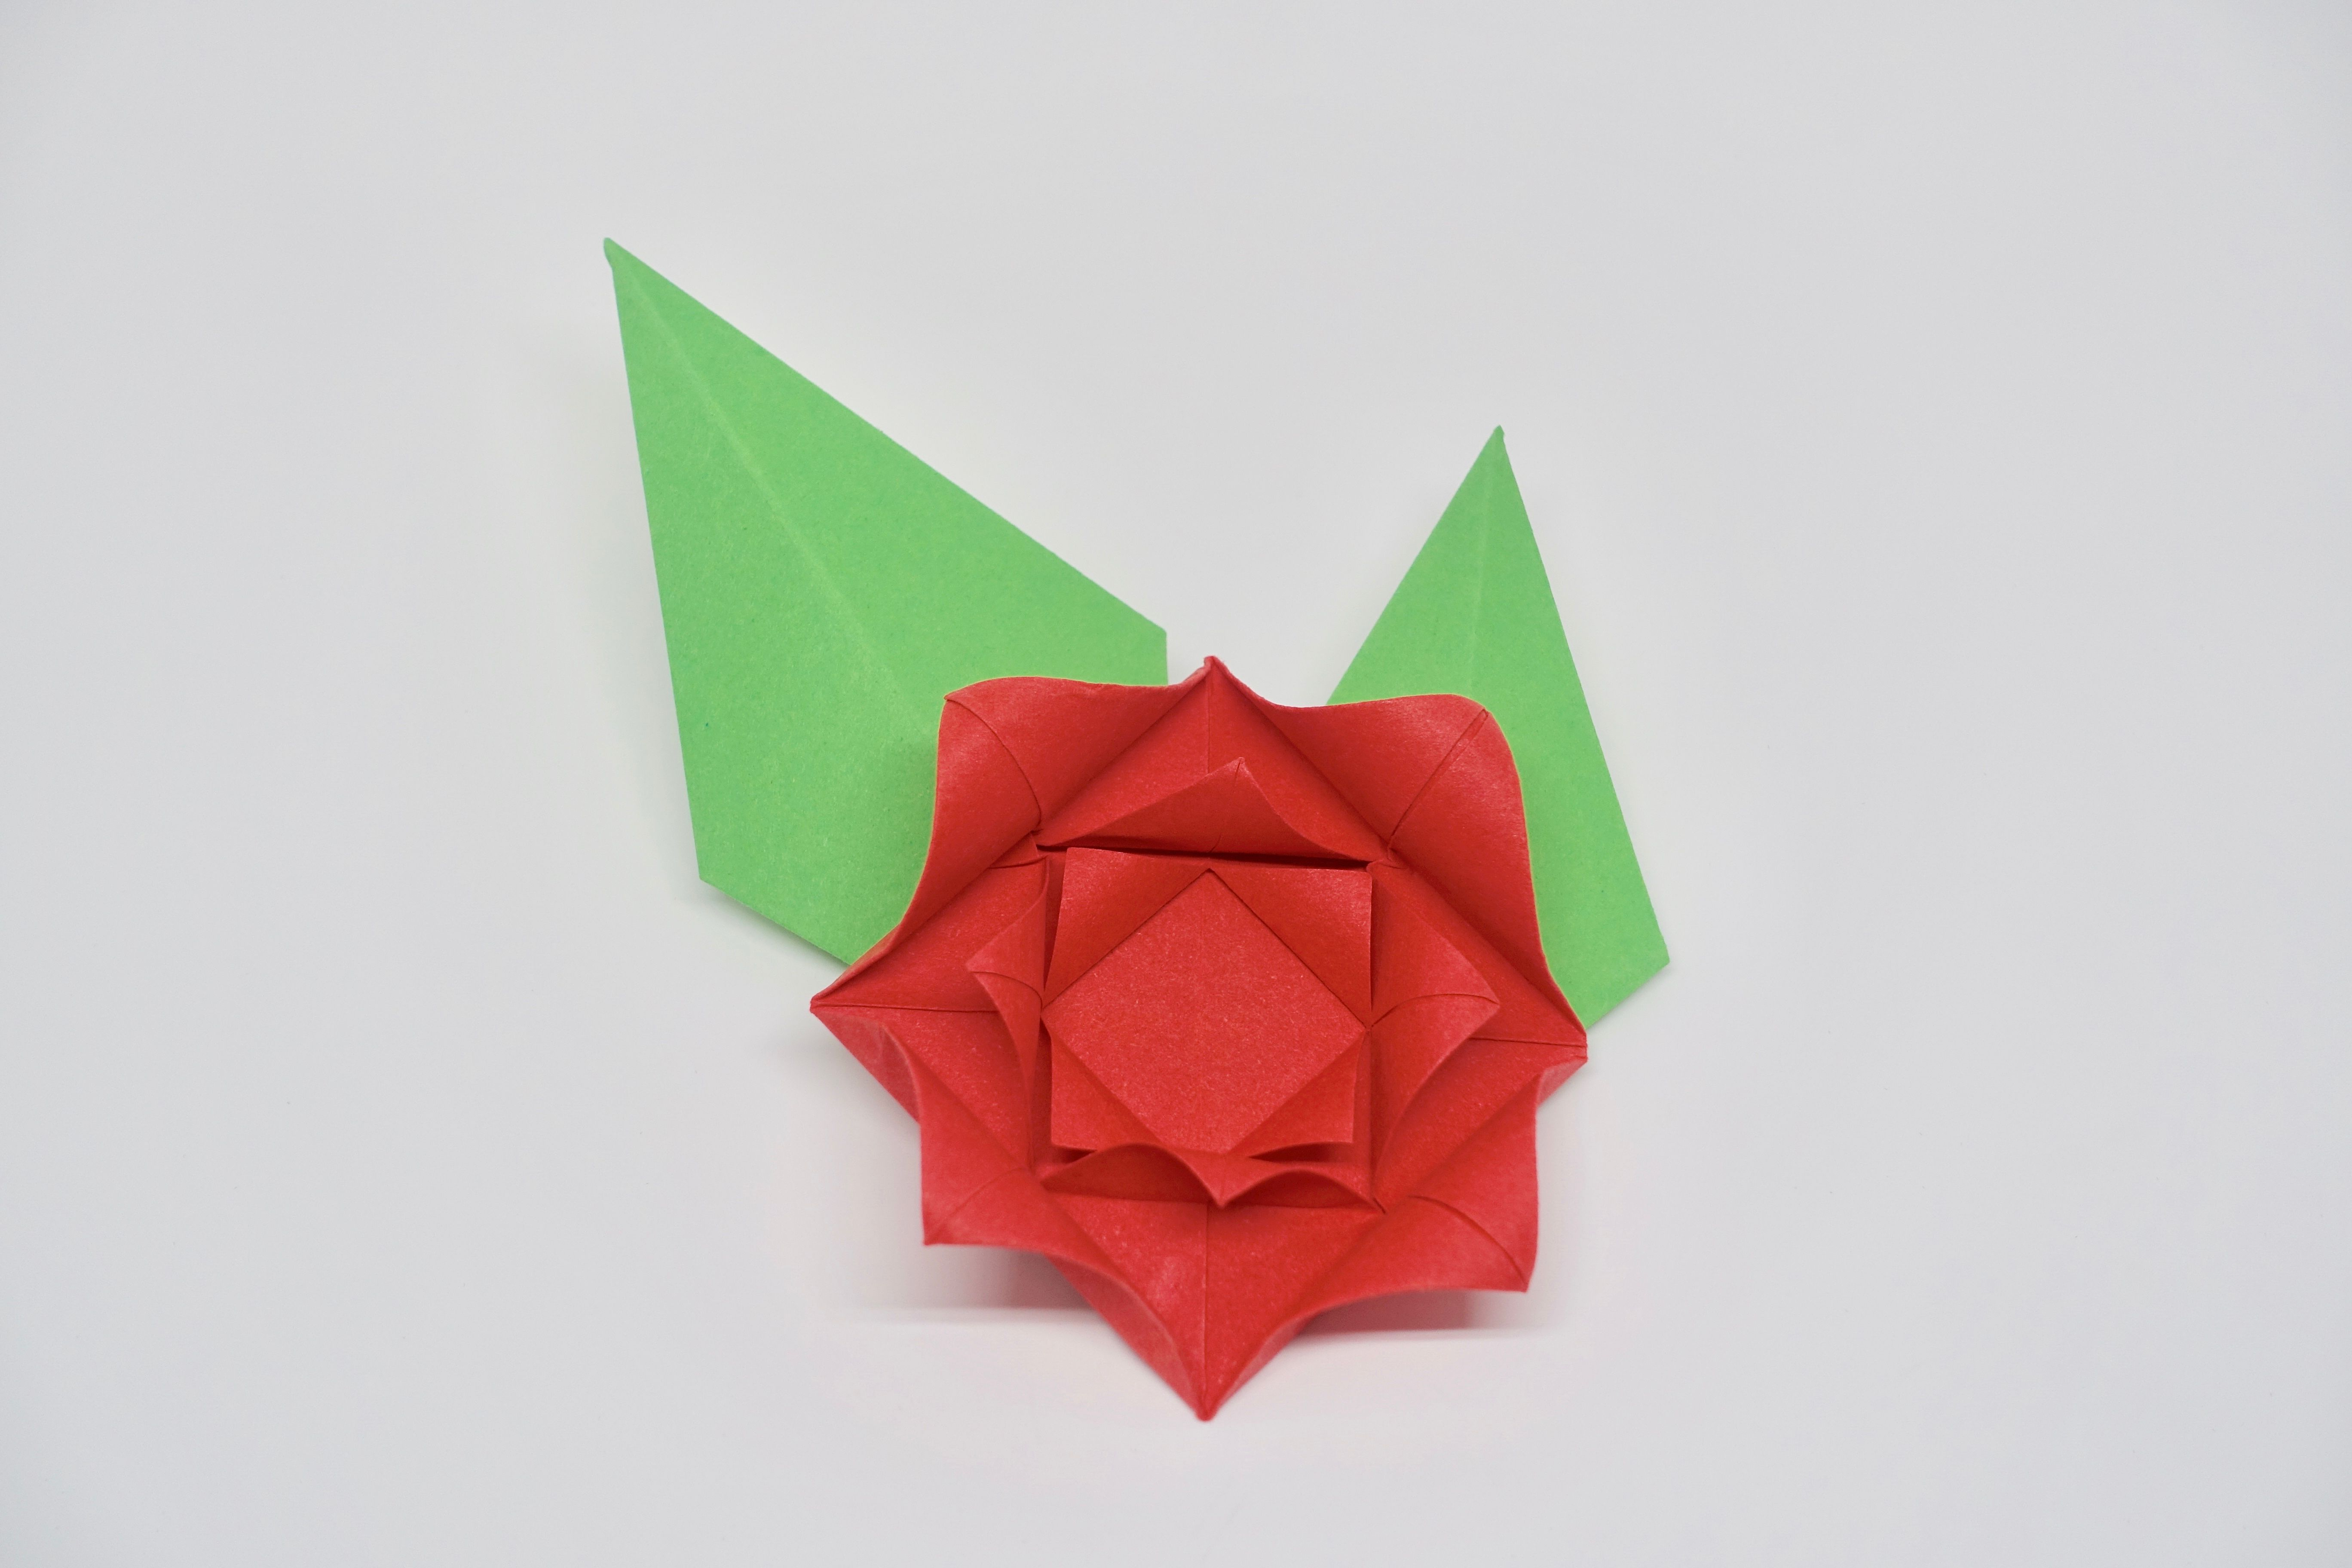 How To Make An Easy Origami Rose Paper Flower - Best Image ... - photo#25